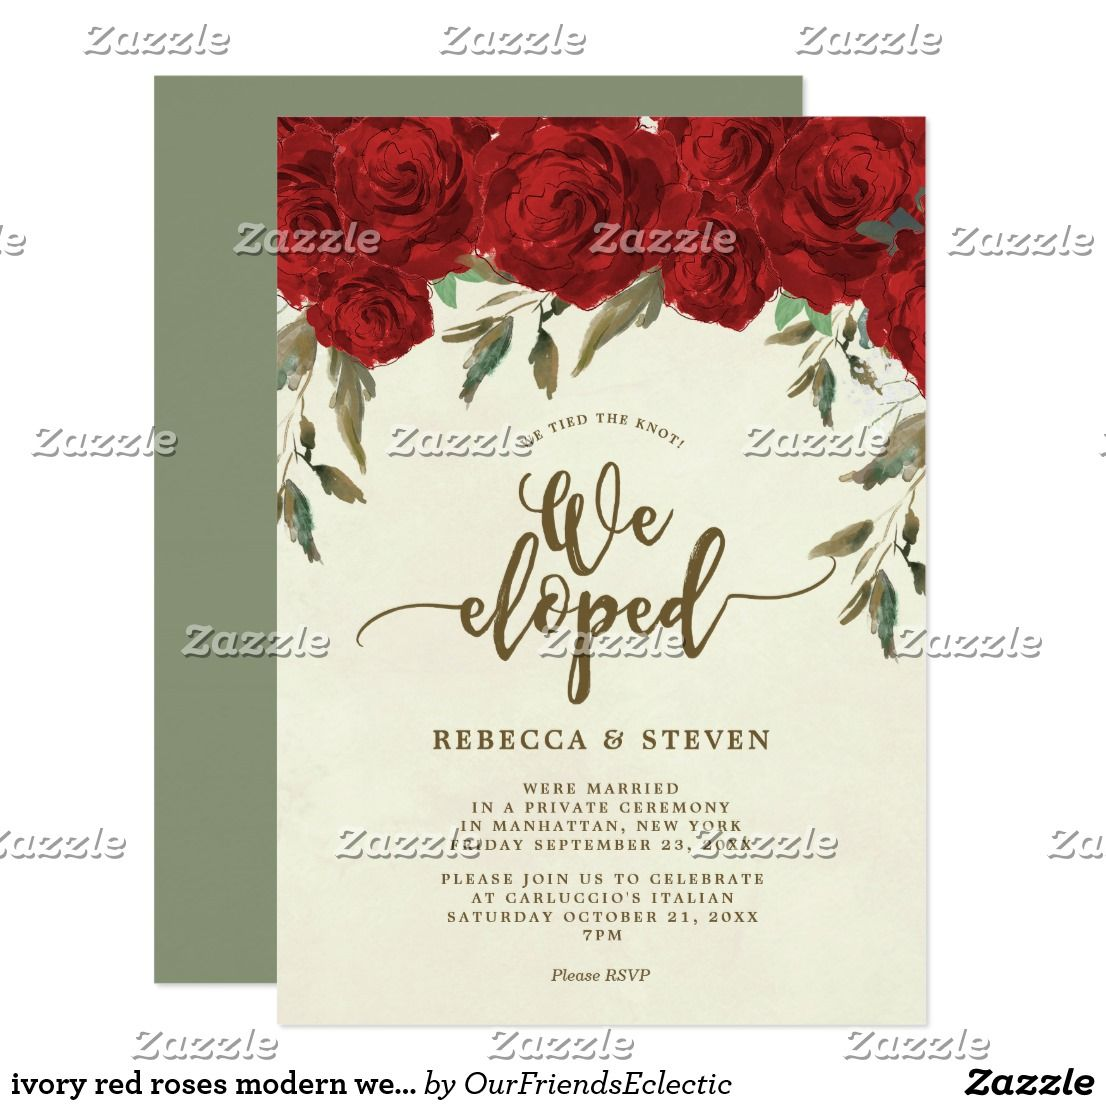 ivory red roses modern we eloped invitation #weeloped ...